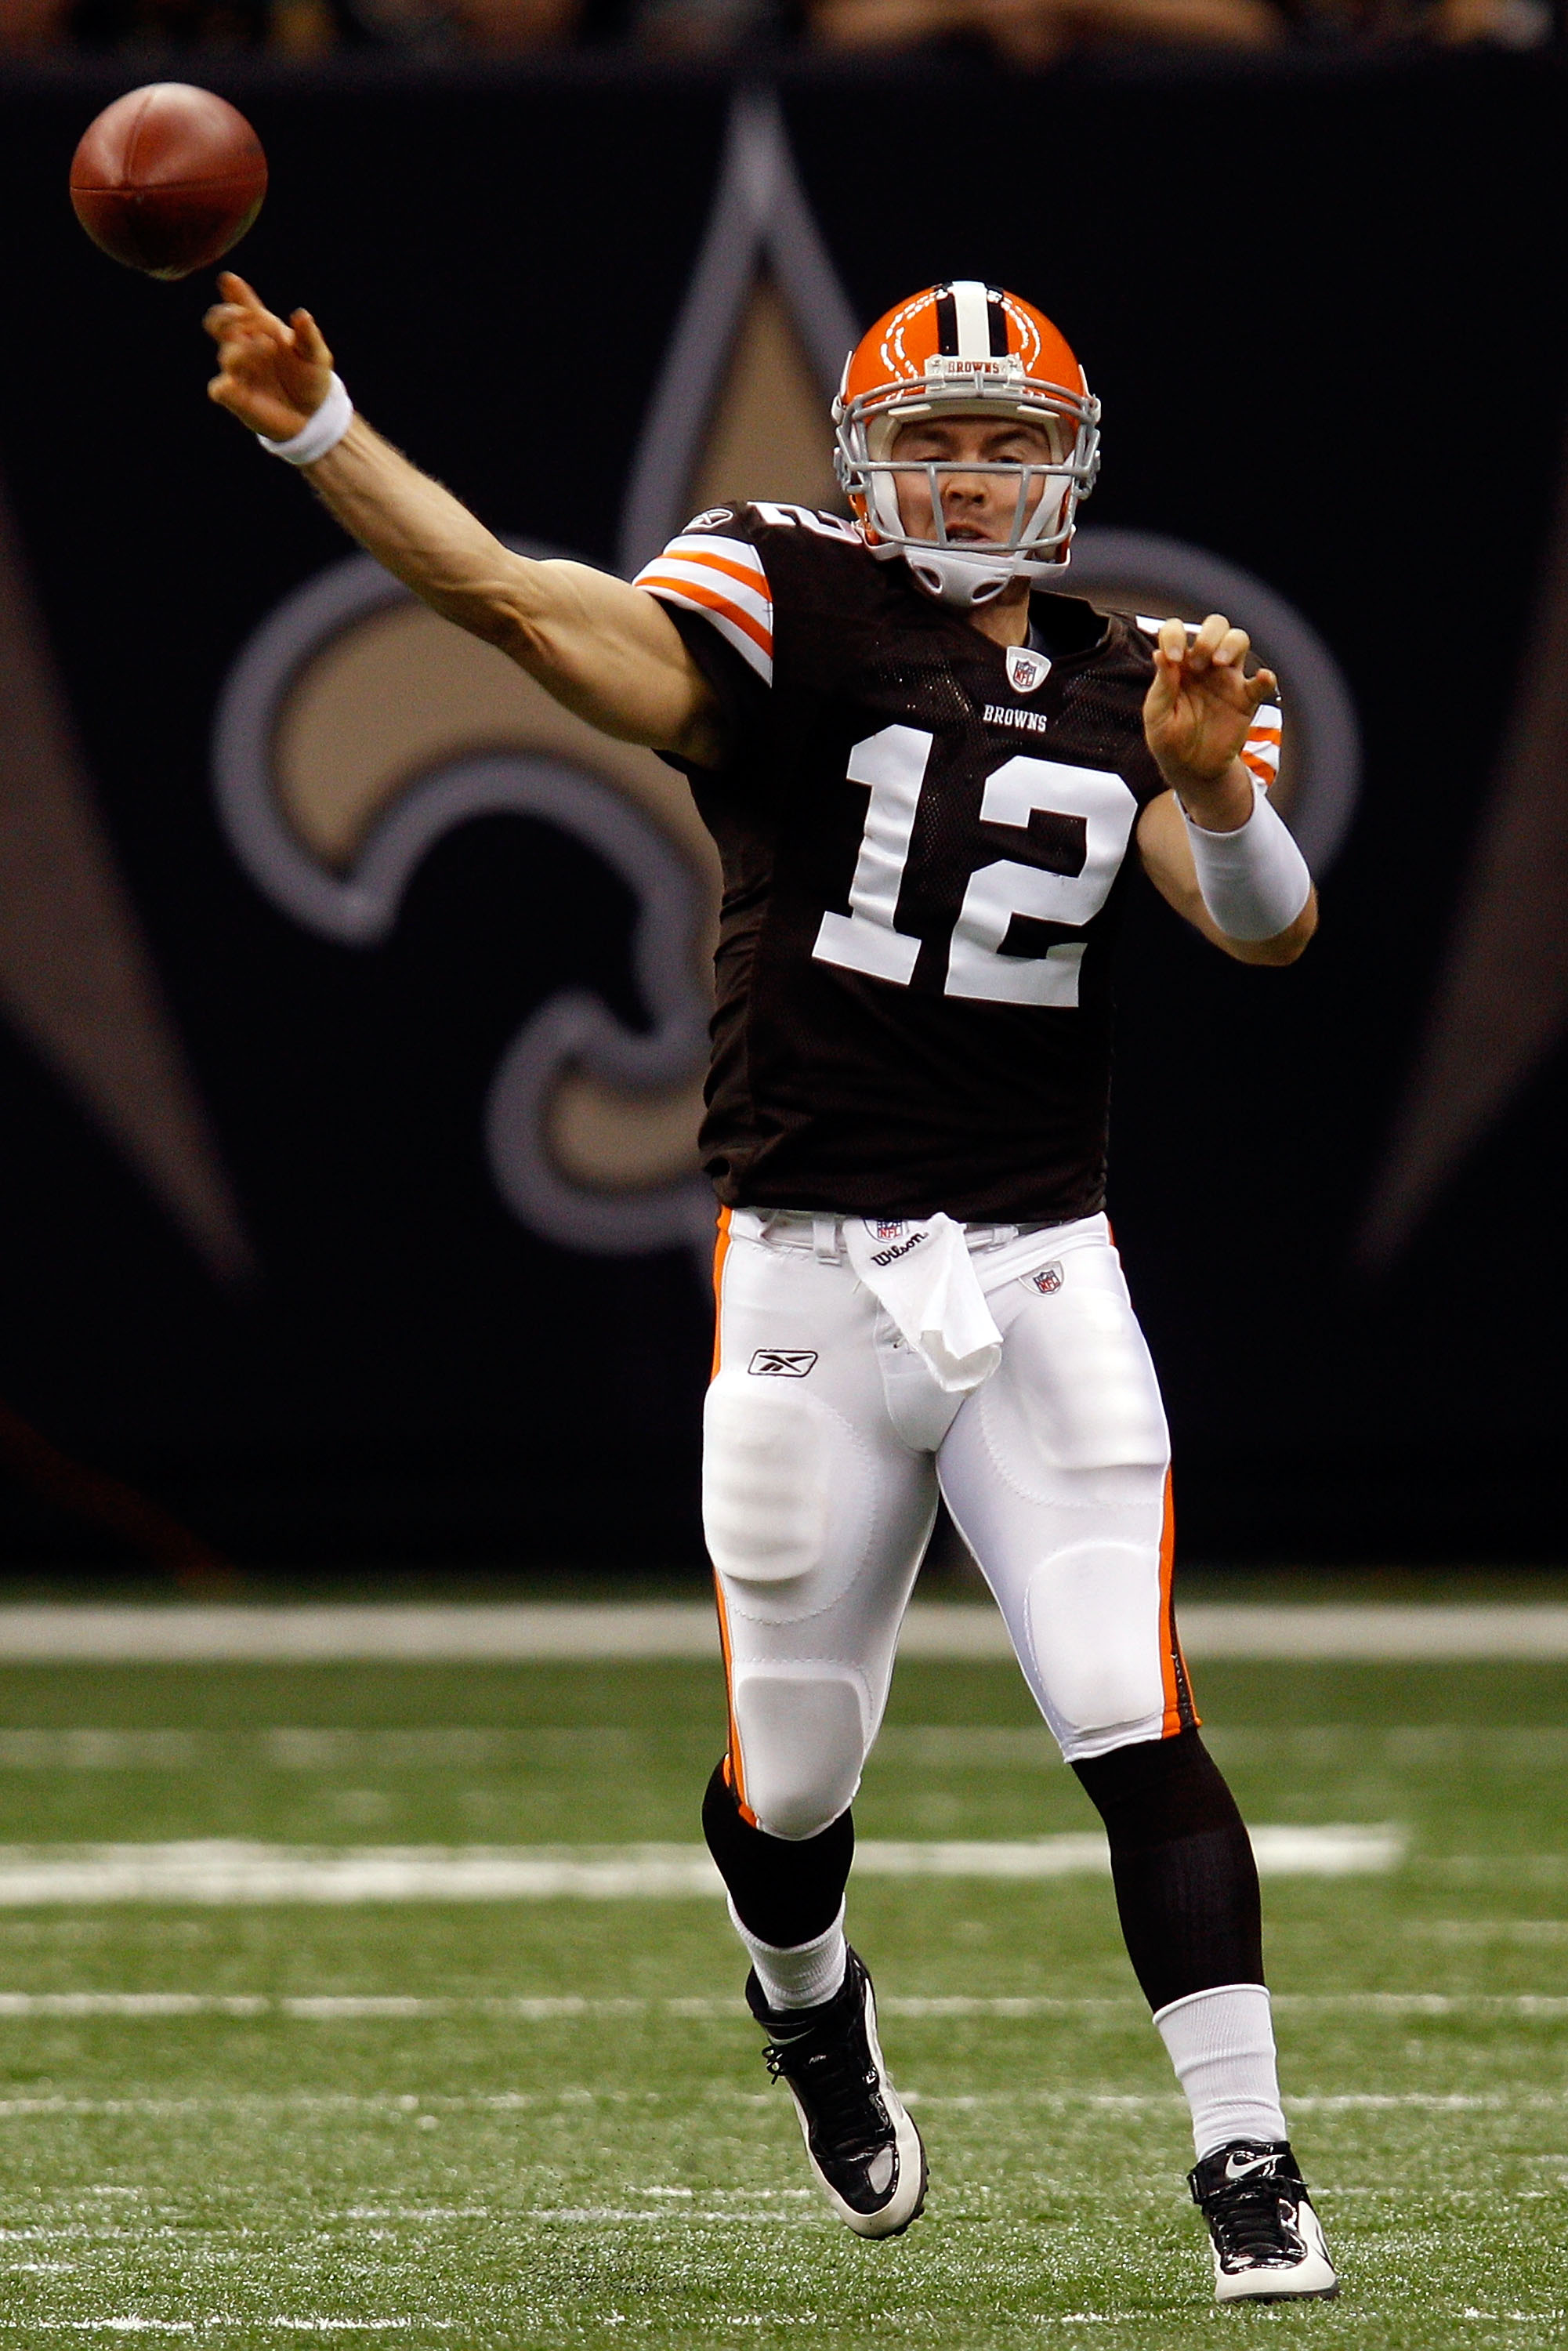 Colt McCoy took over the Browns' starting job for the injured Jake DelHomme and played well.